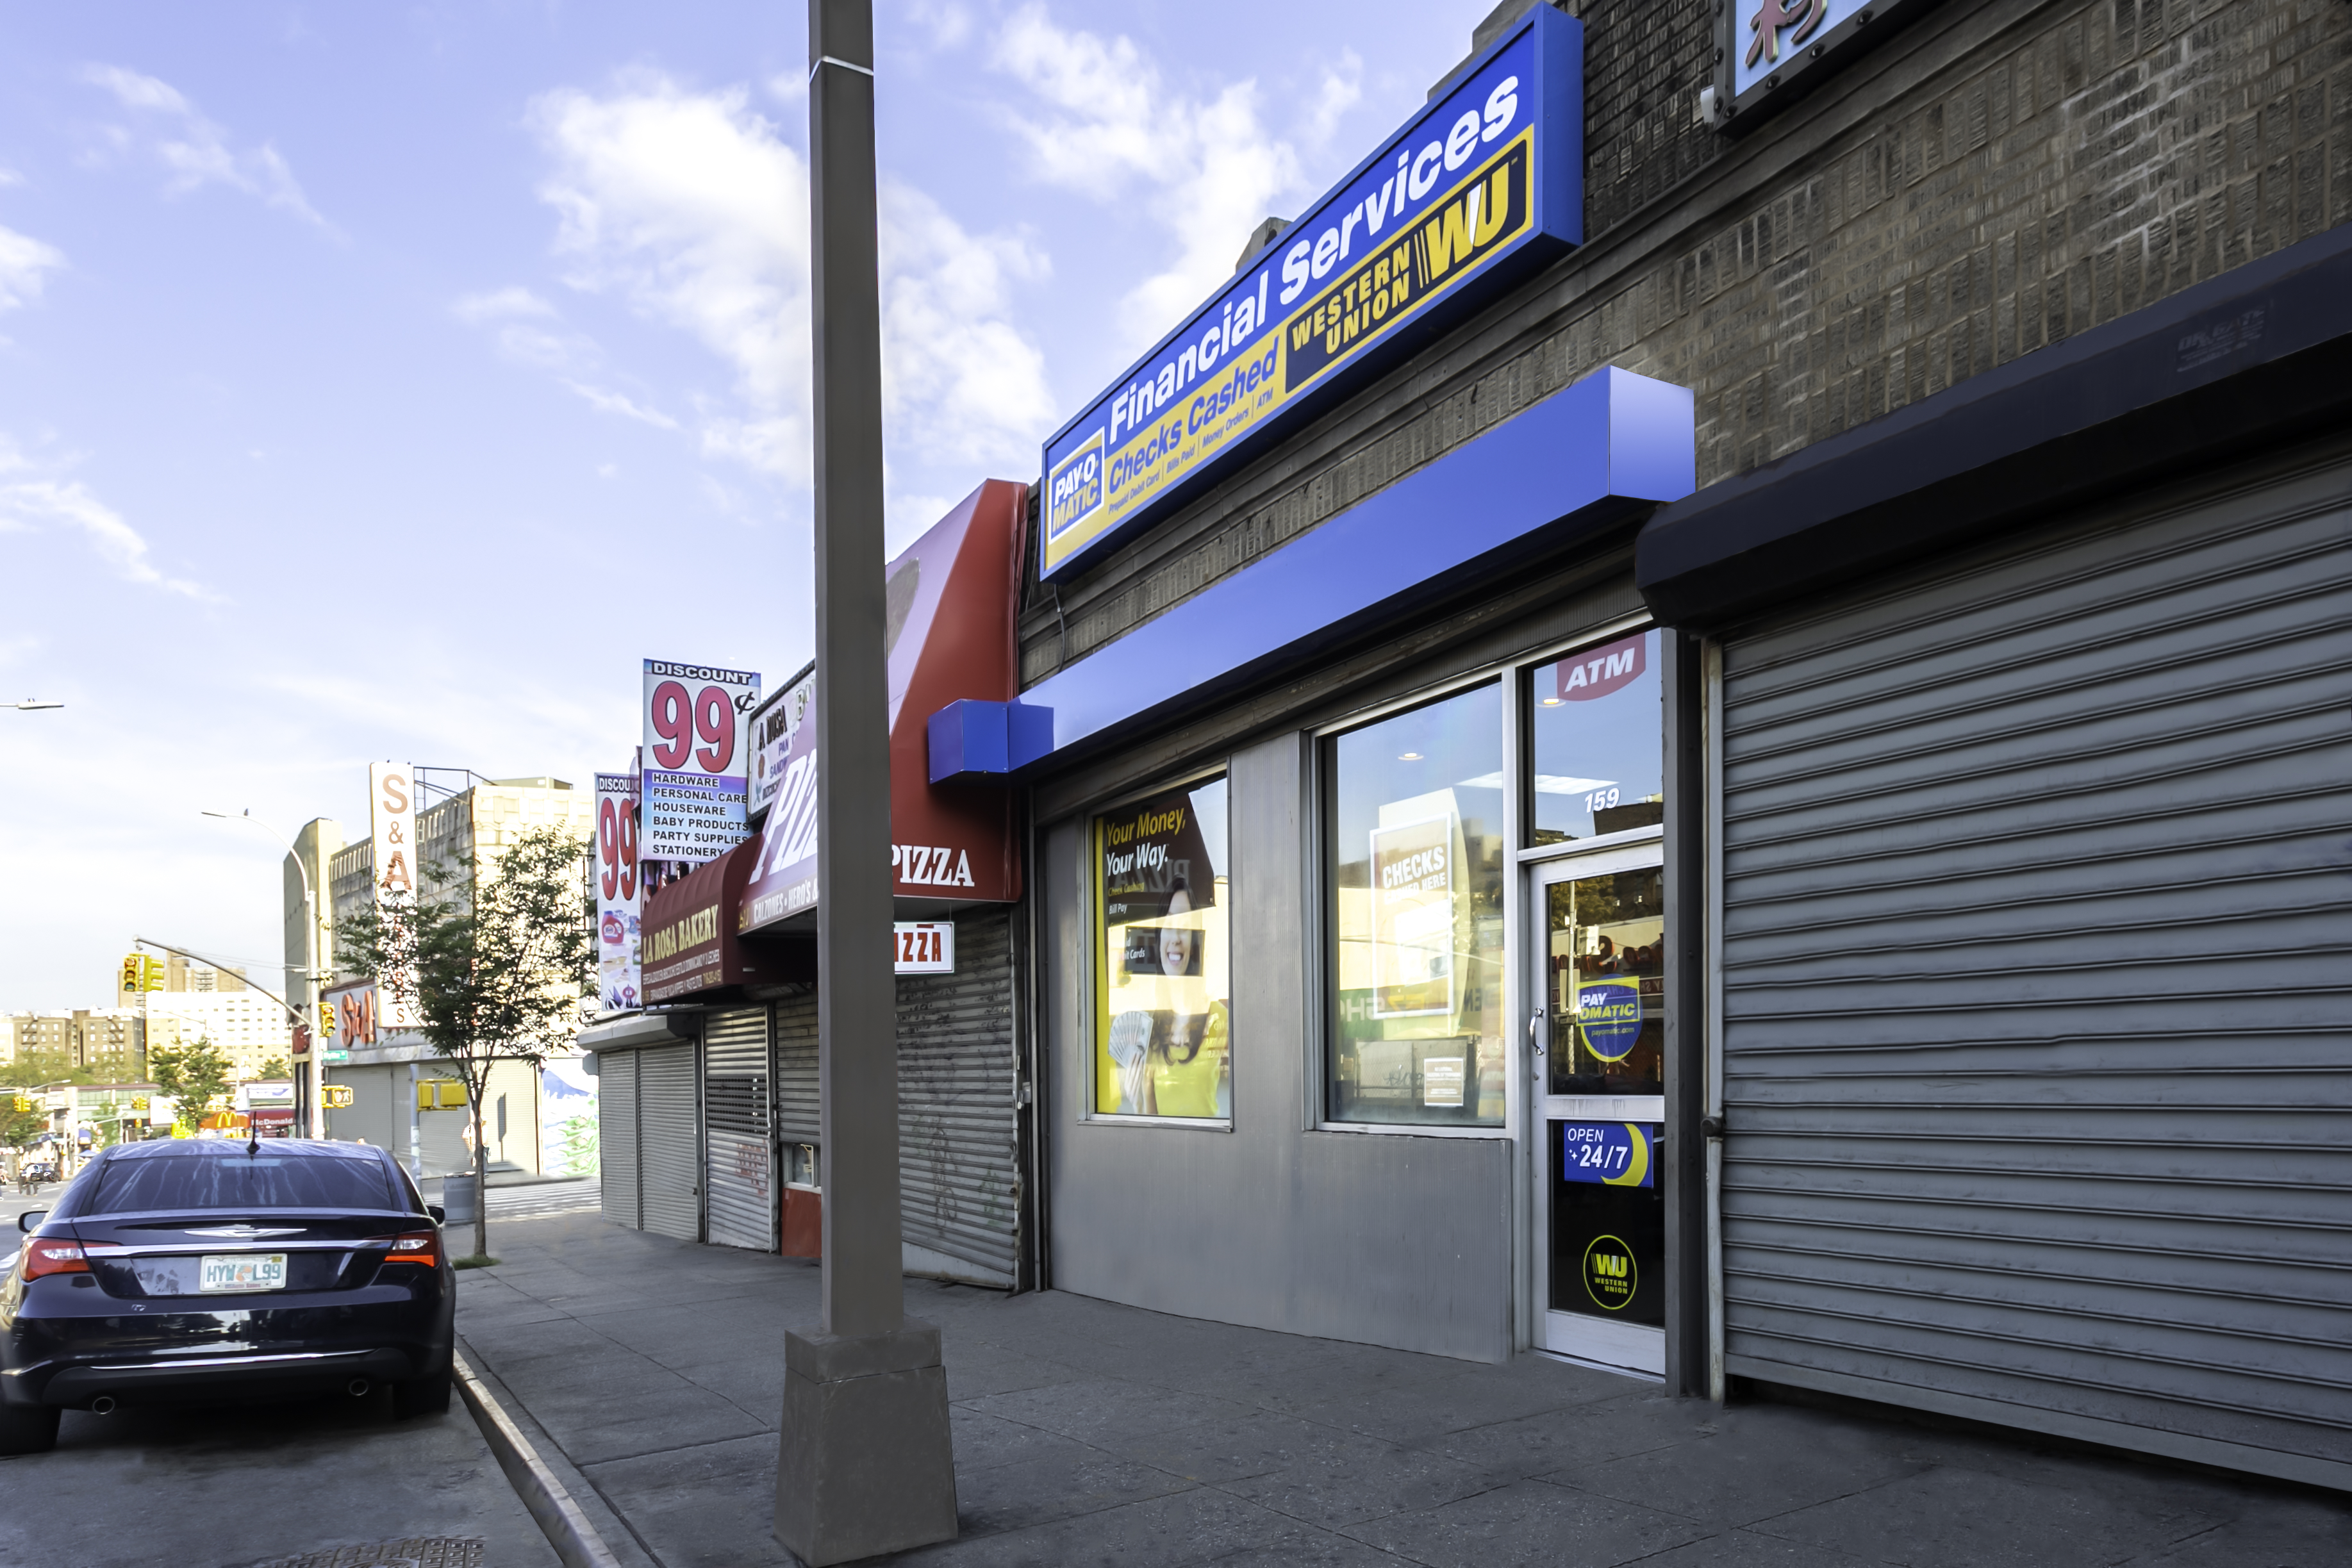 Exterior view from sidewalk of PAYOMATIC store located at 159 East 170th St Bronx, NY 10452